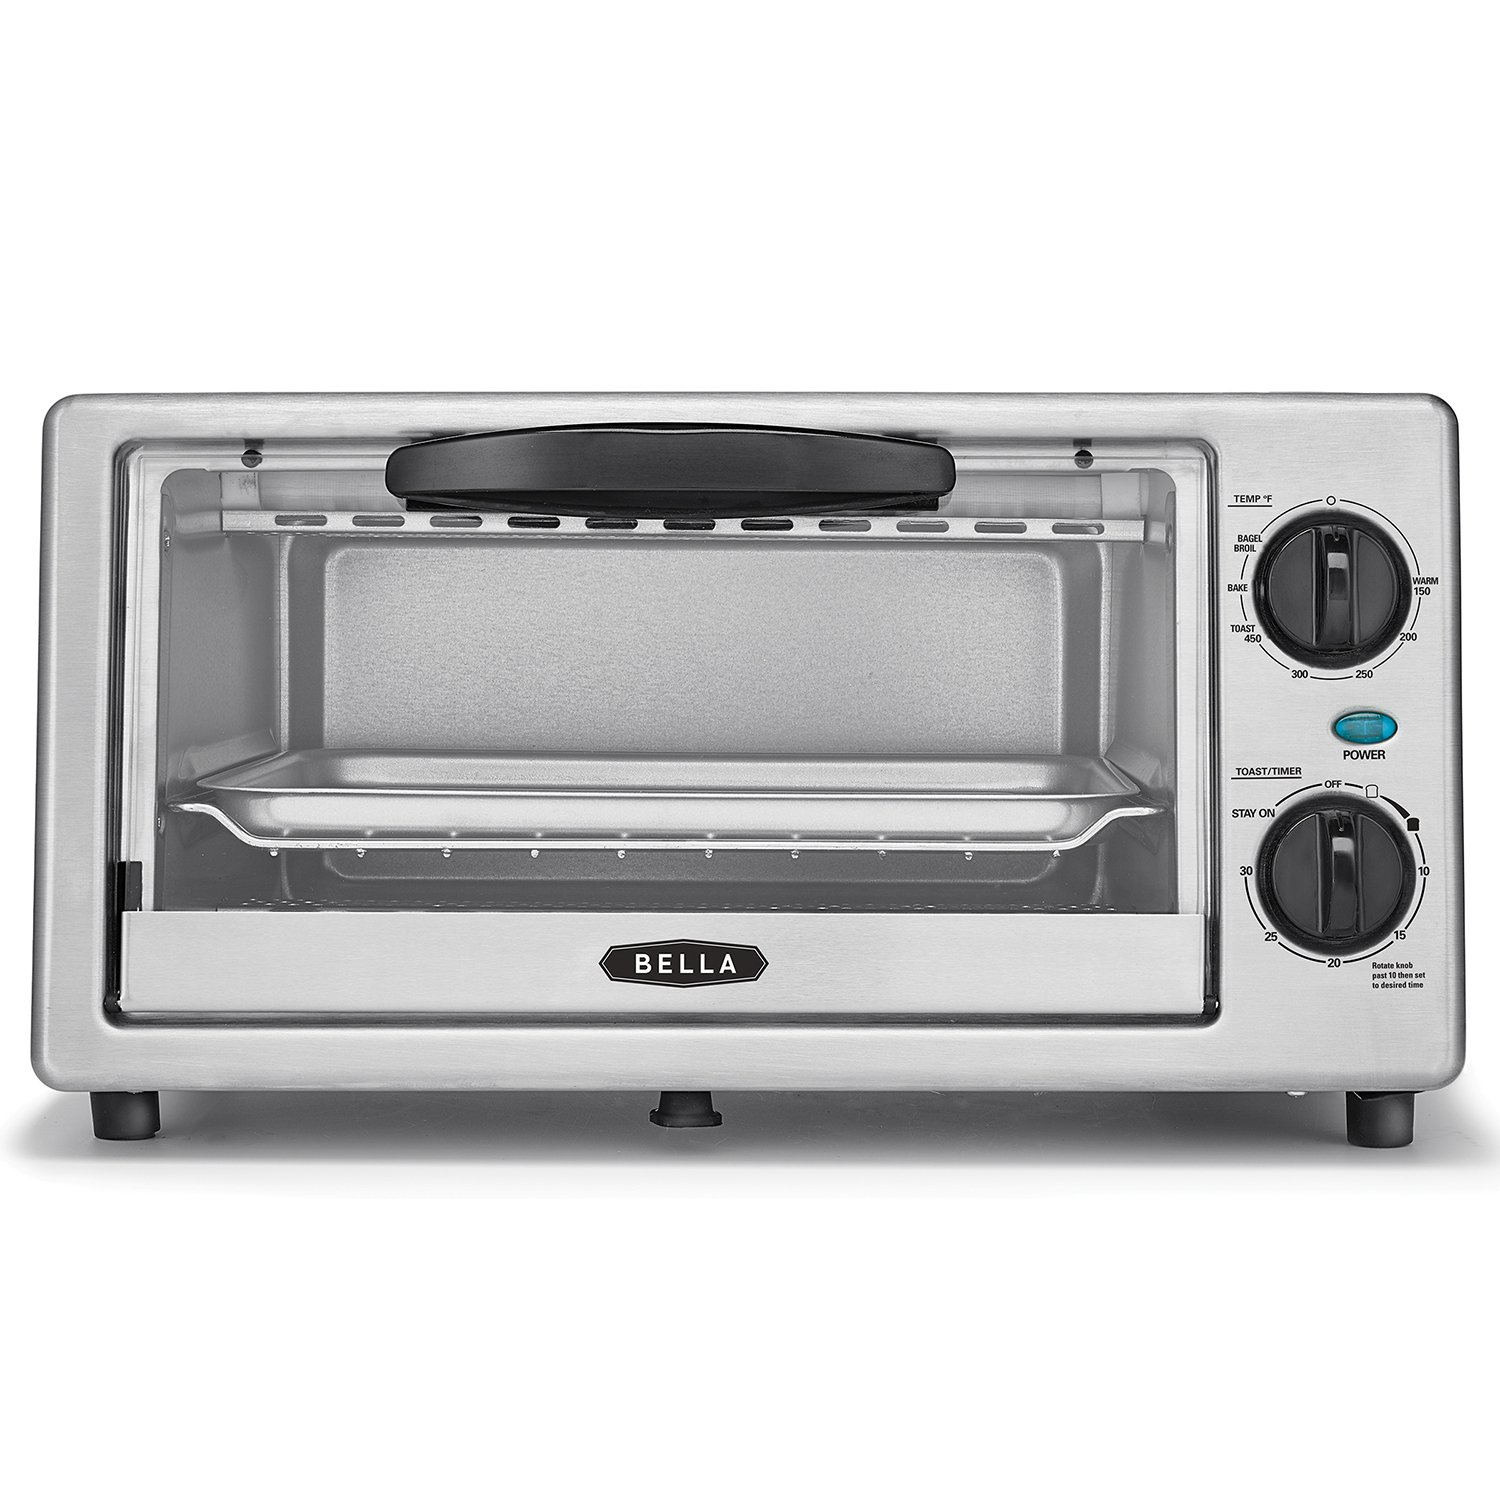 BELLA 4 Slice Countertop Toaster Oven, 1000 Watt Quartz Element